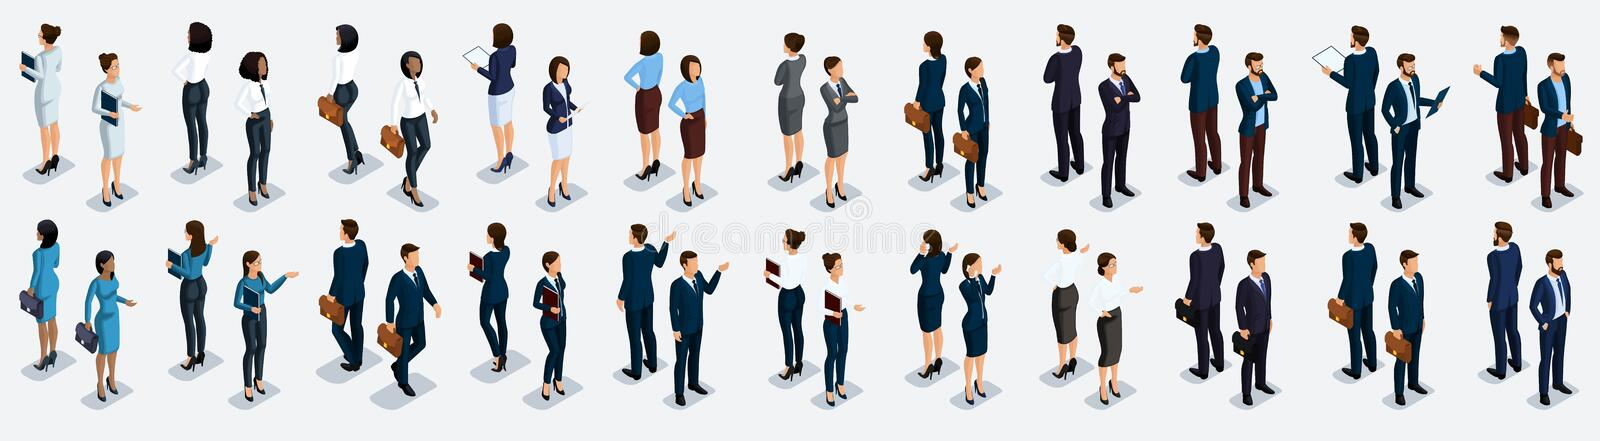 Isometric large set of businessmen and business woman, front view and rear view, vector illustration vector illustration